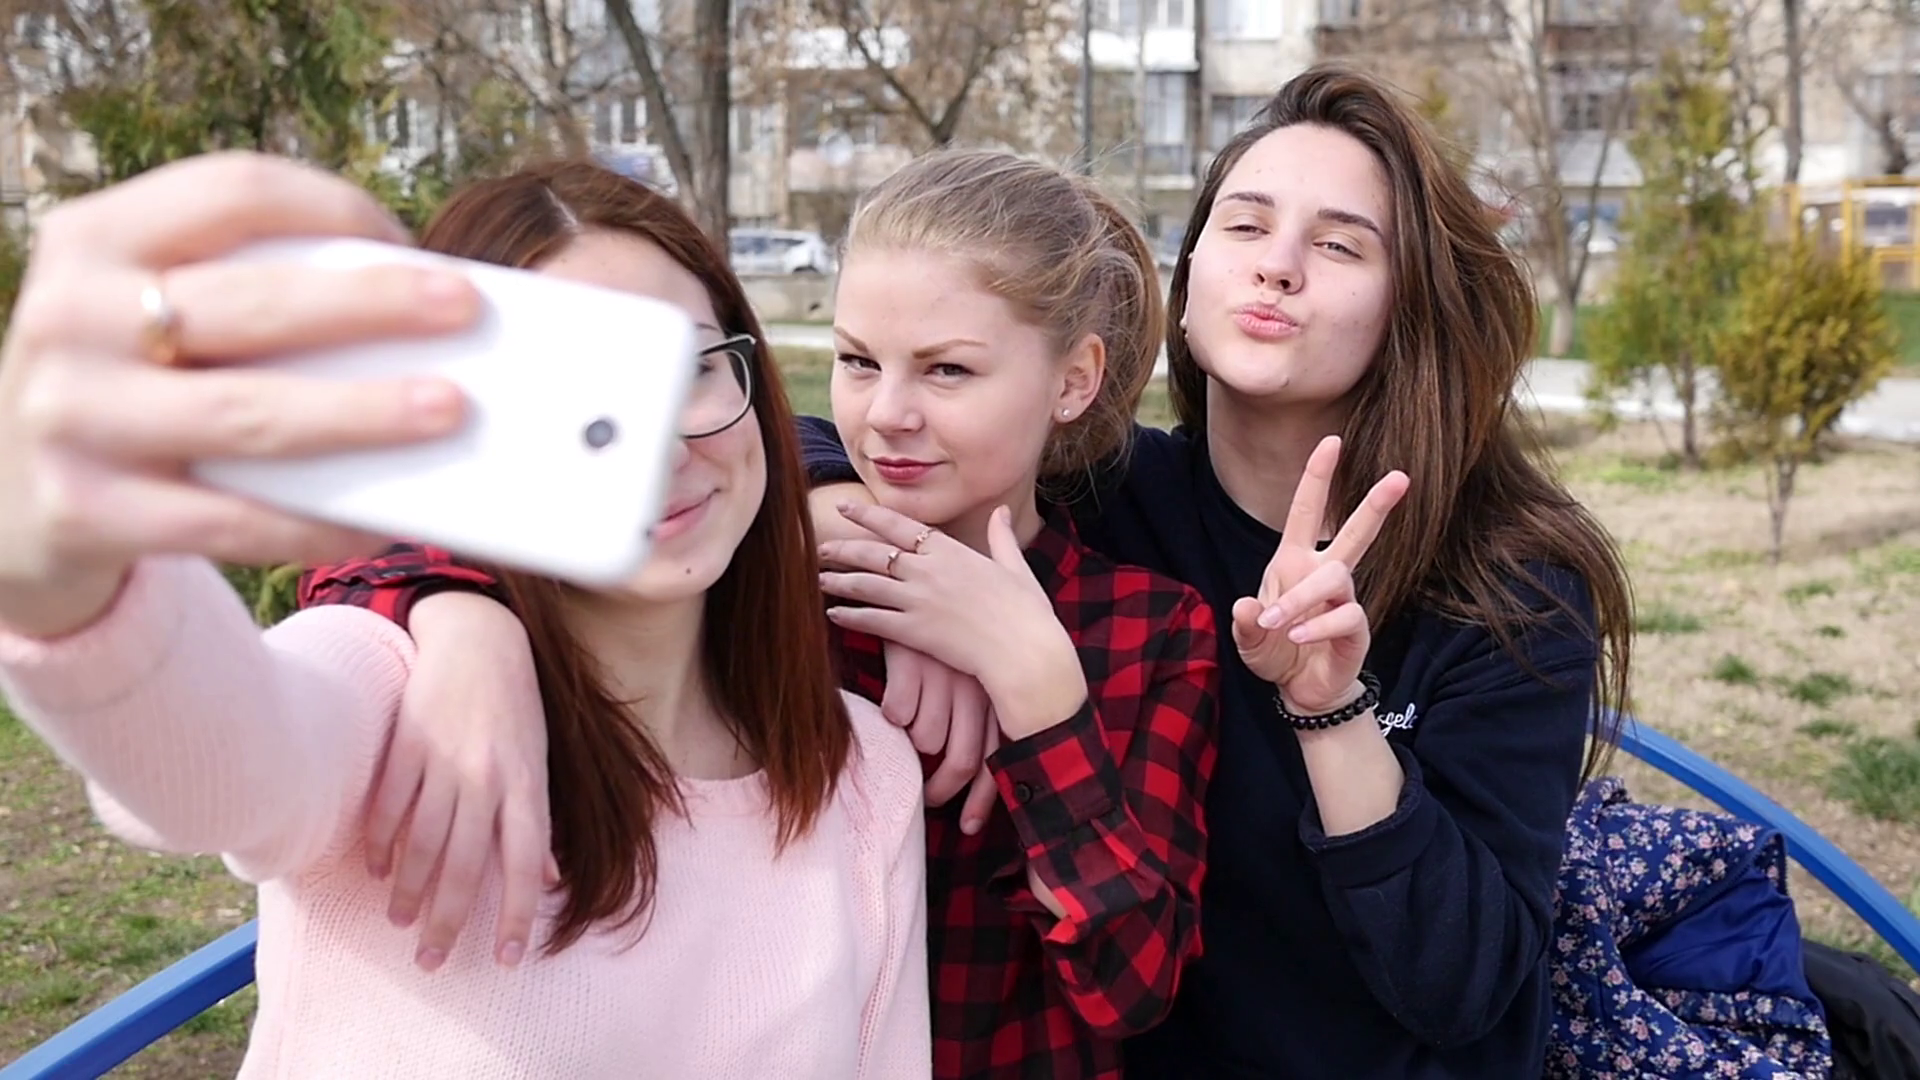 young-girls-friends-posing-taking-selfie-photo-picture-for-instagram-and-fa_b9uqihas_thumbnail-full01.png